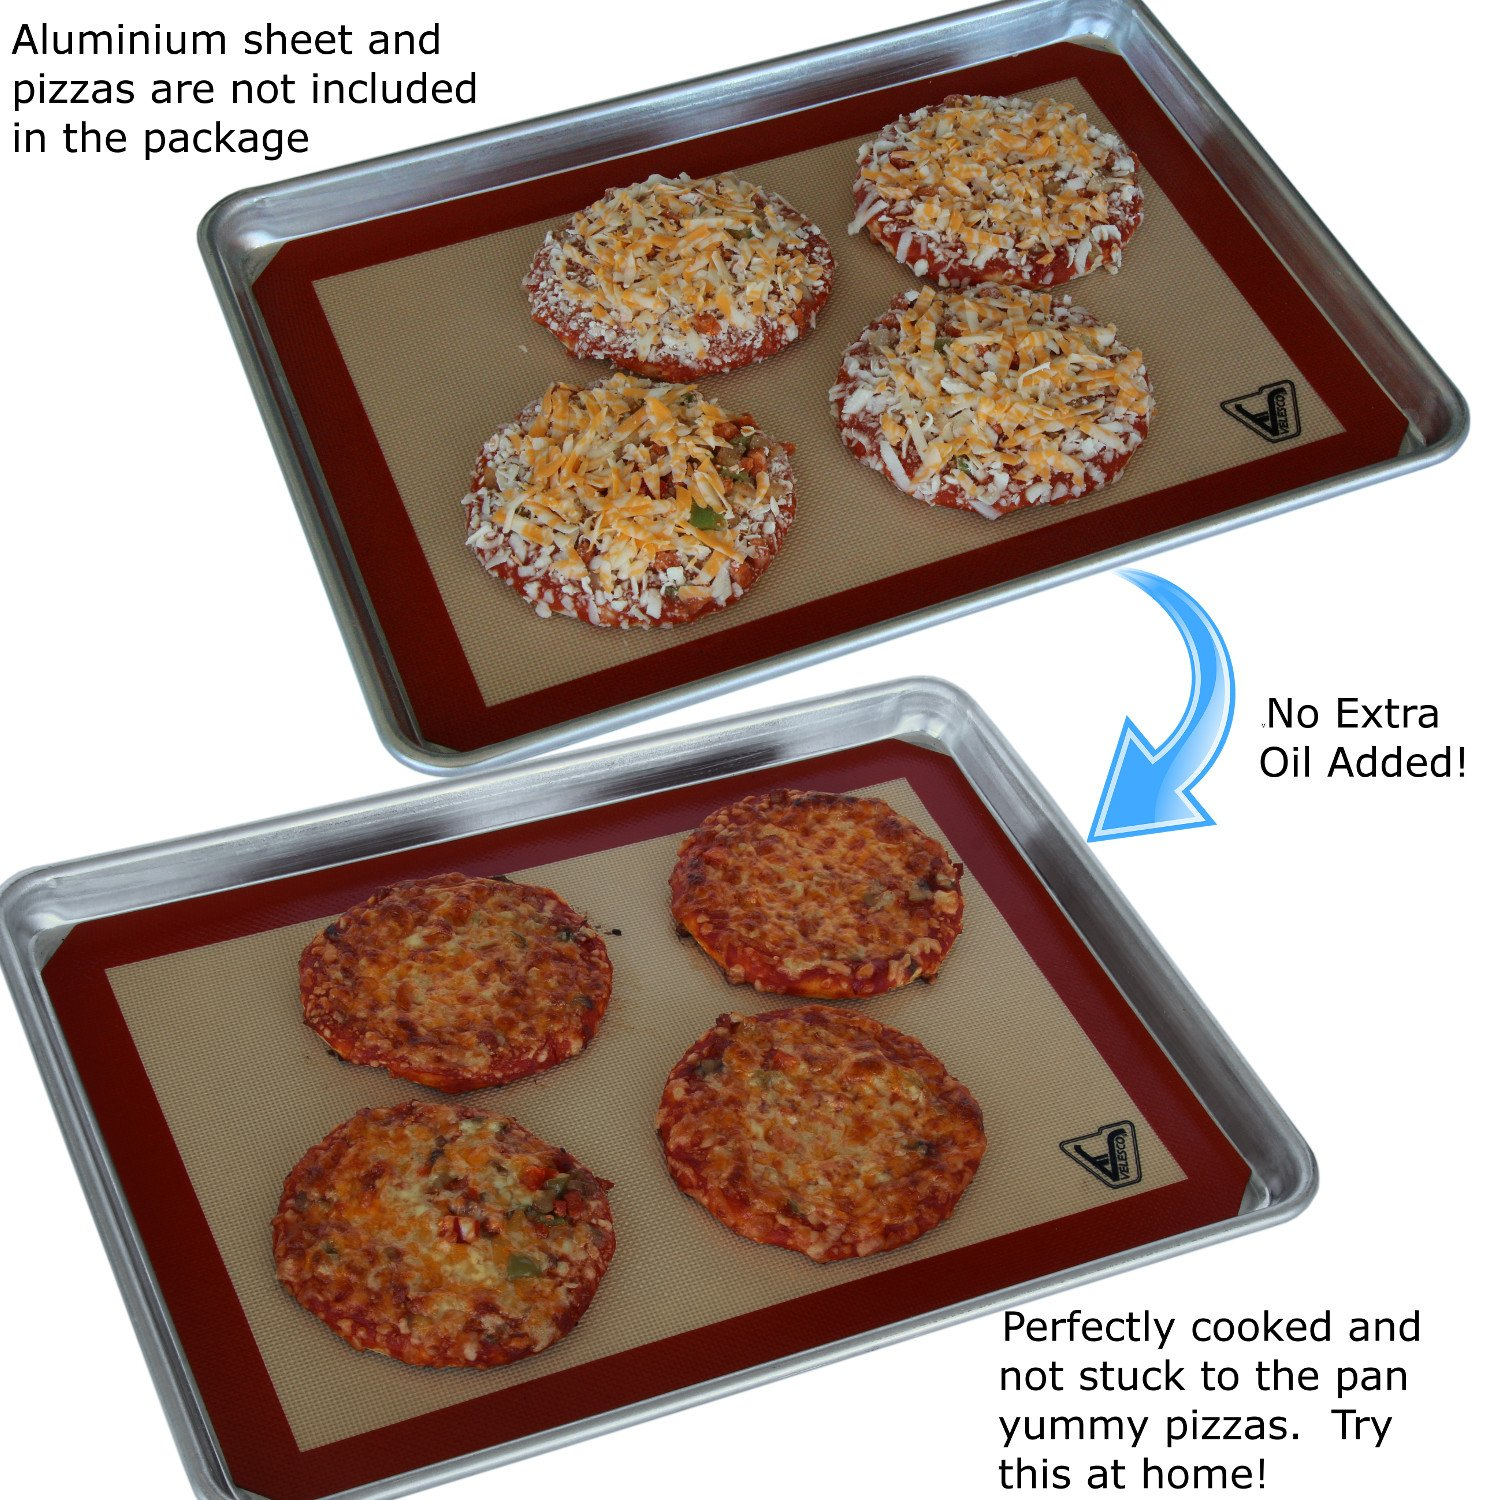 Silicone Baking Mat - Set of 3 Half Sheet (Thick & Large 11 5/8'' x 16 1/2'') - Non Stick Silicon Liner for Bake Pans & Rolling - Macaron/Pastry/Cookie/Bun/Bread Making - Professional Grade Nonstick by Velesco (Image #5)